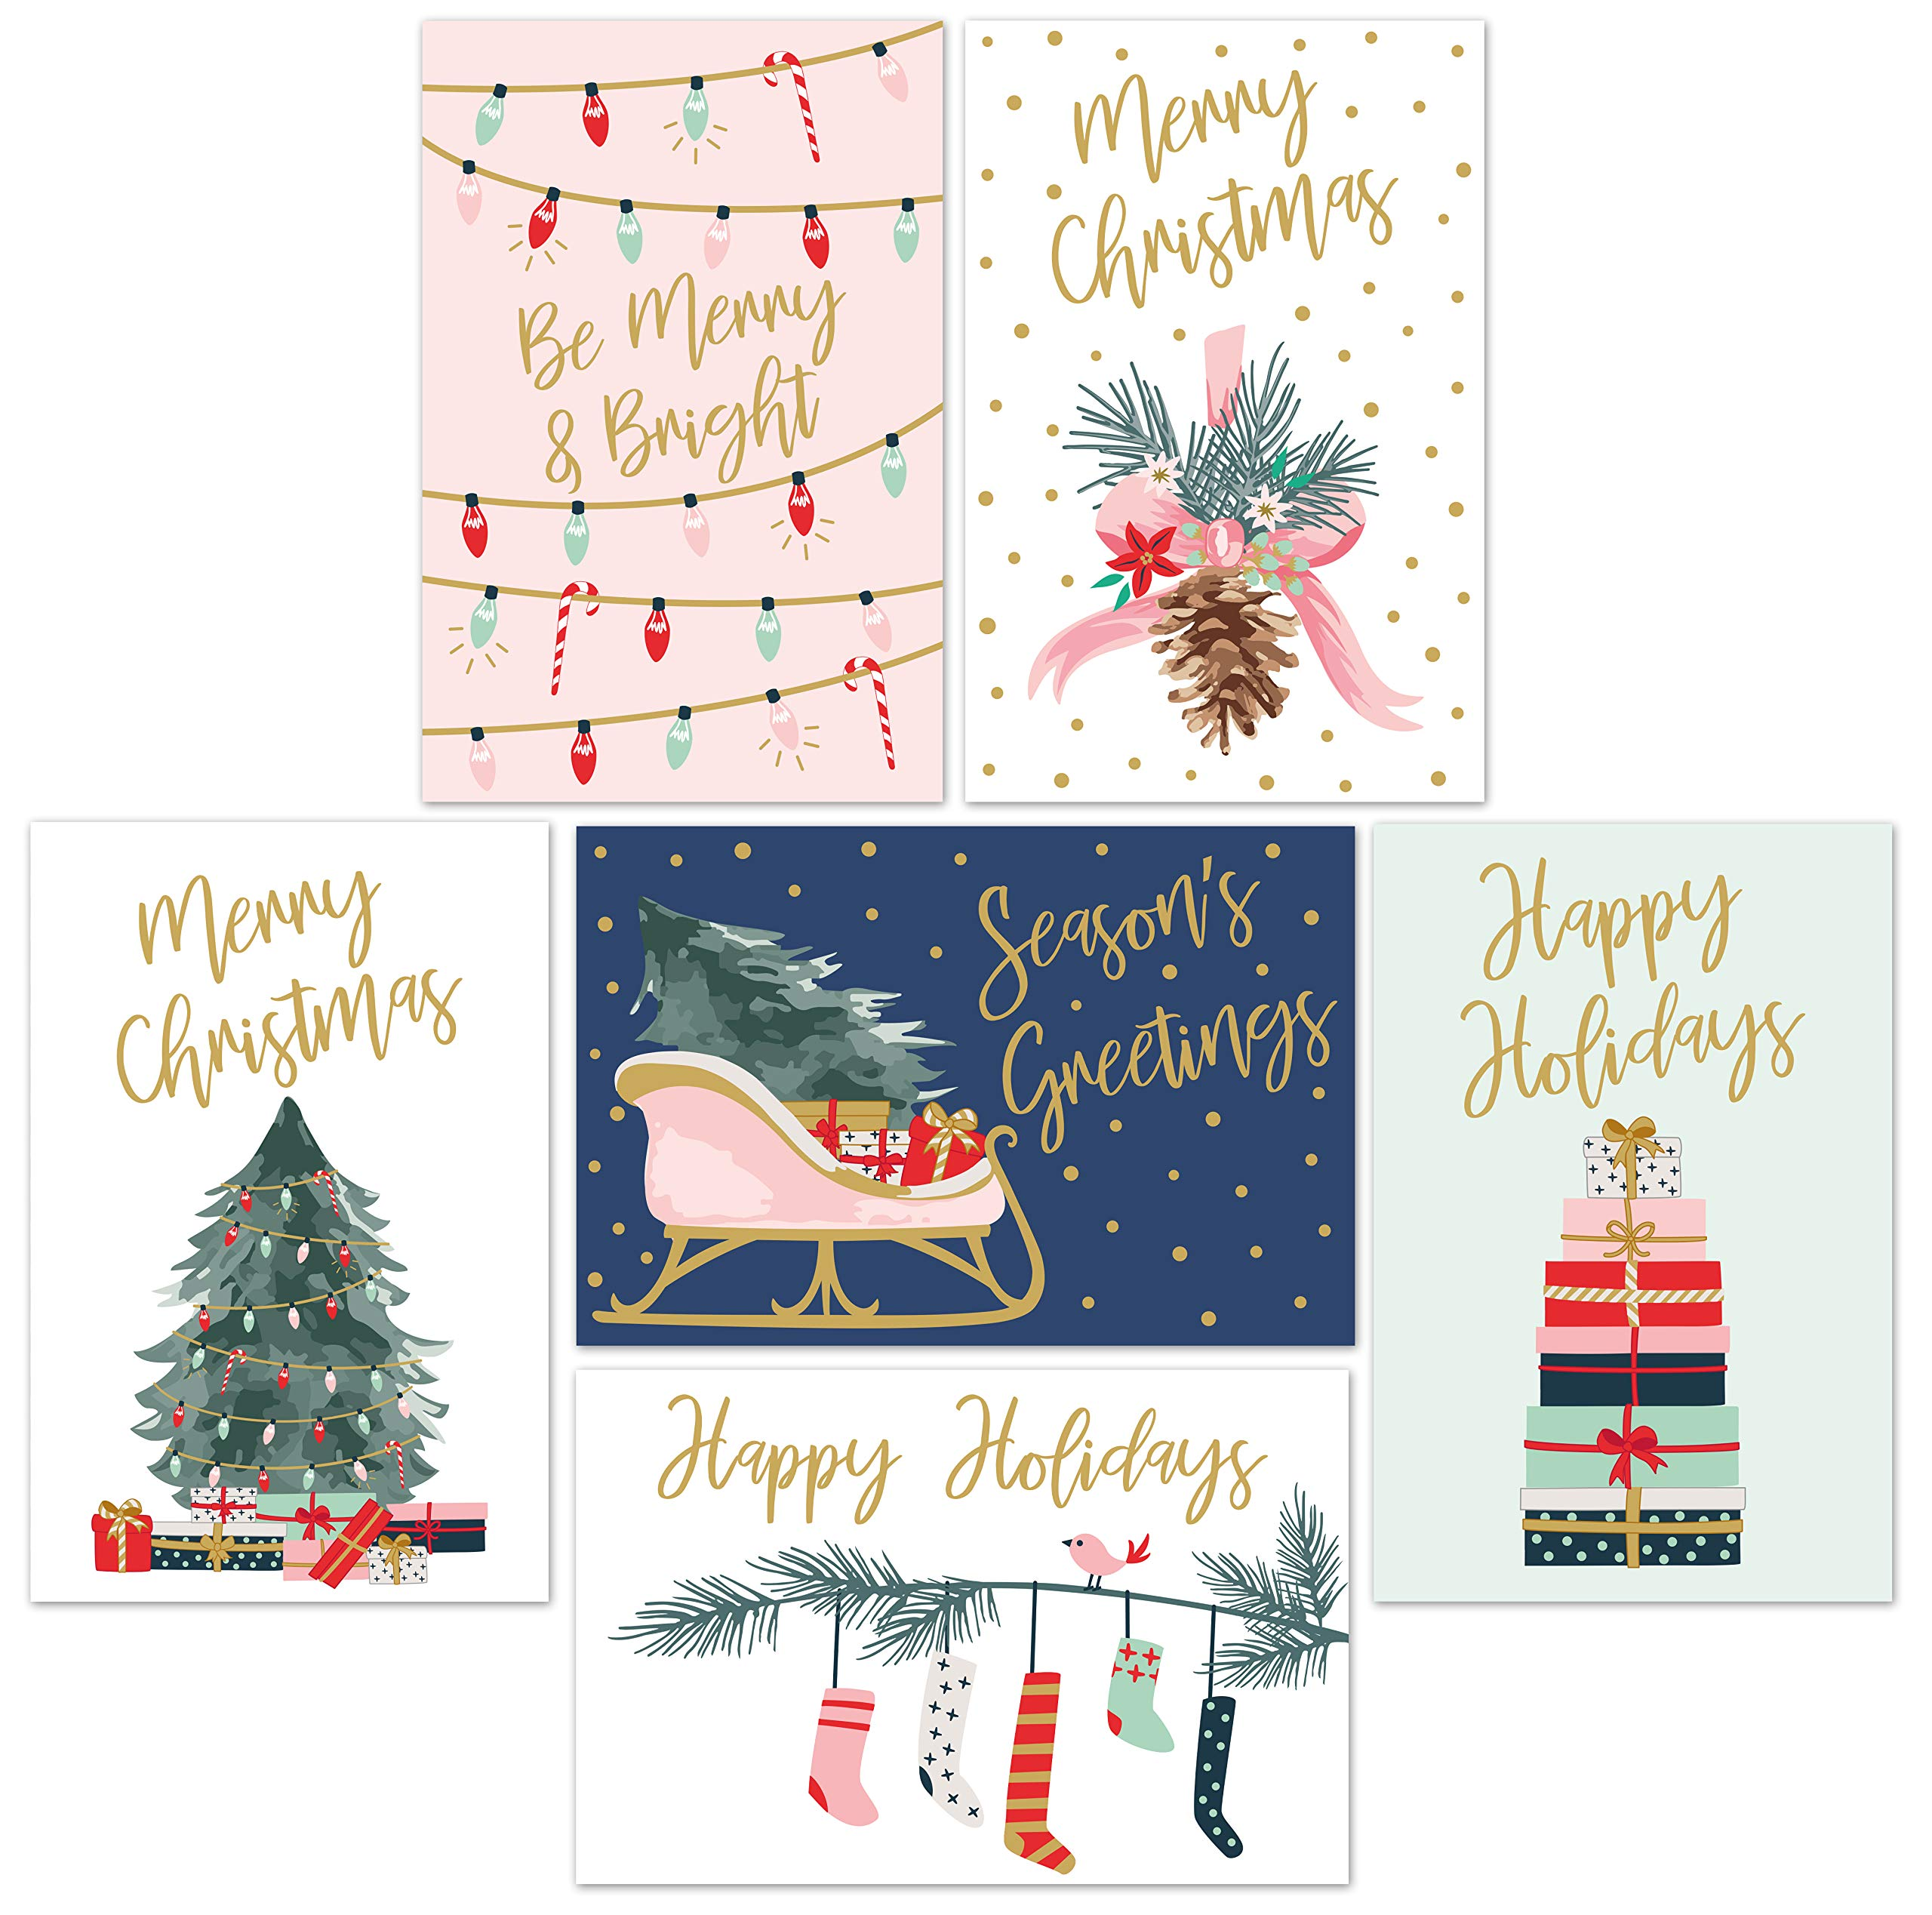 """Christmas Cards Set - 24 Gold Foil Holiday Cards with Red Envelopes – 6 Assorted Designs featuring Traditional Yuletide Images! Bulk Greeting and New Years Cards - 4x6"""""""